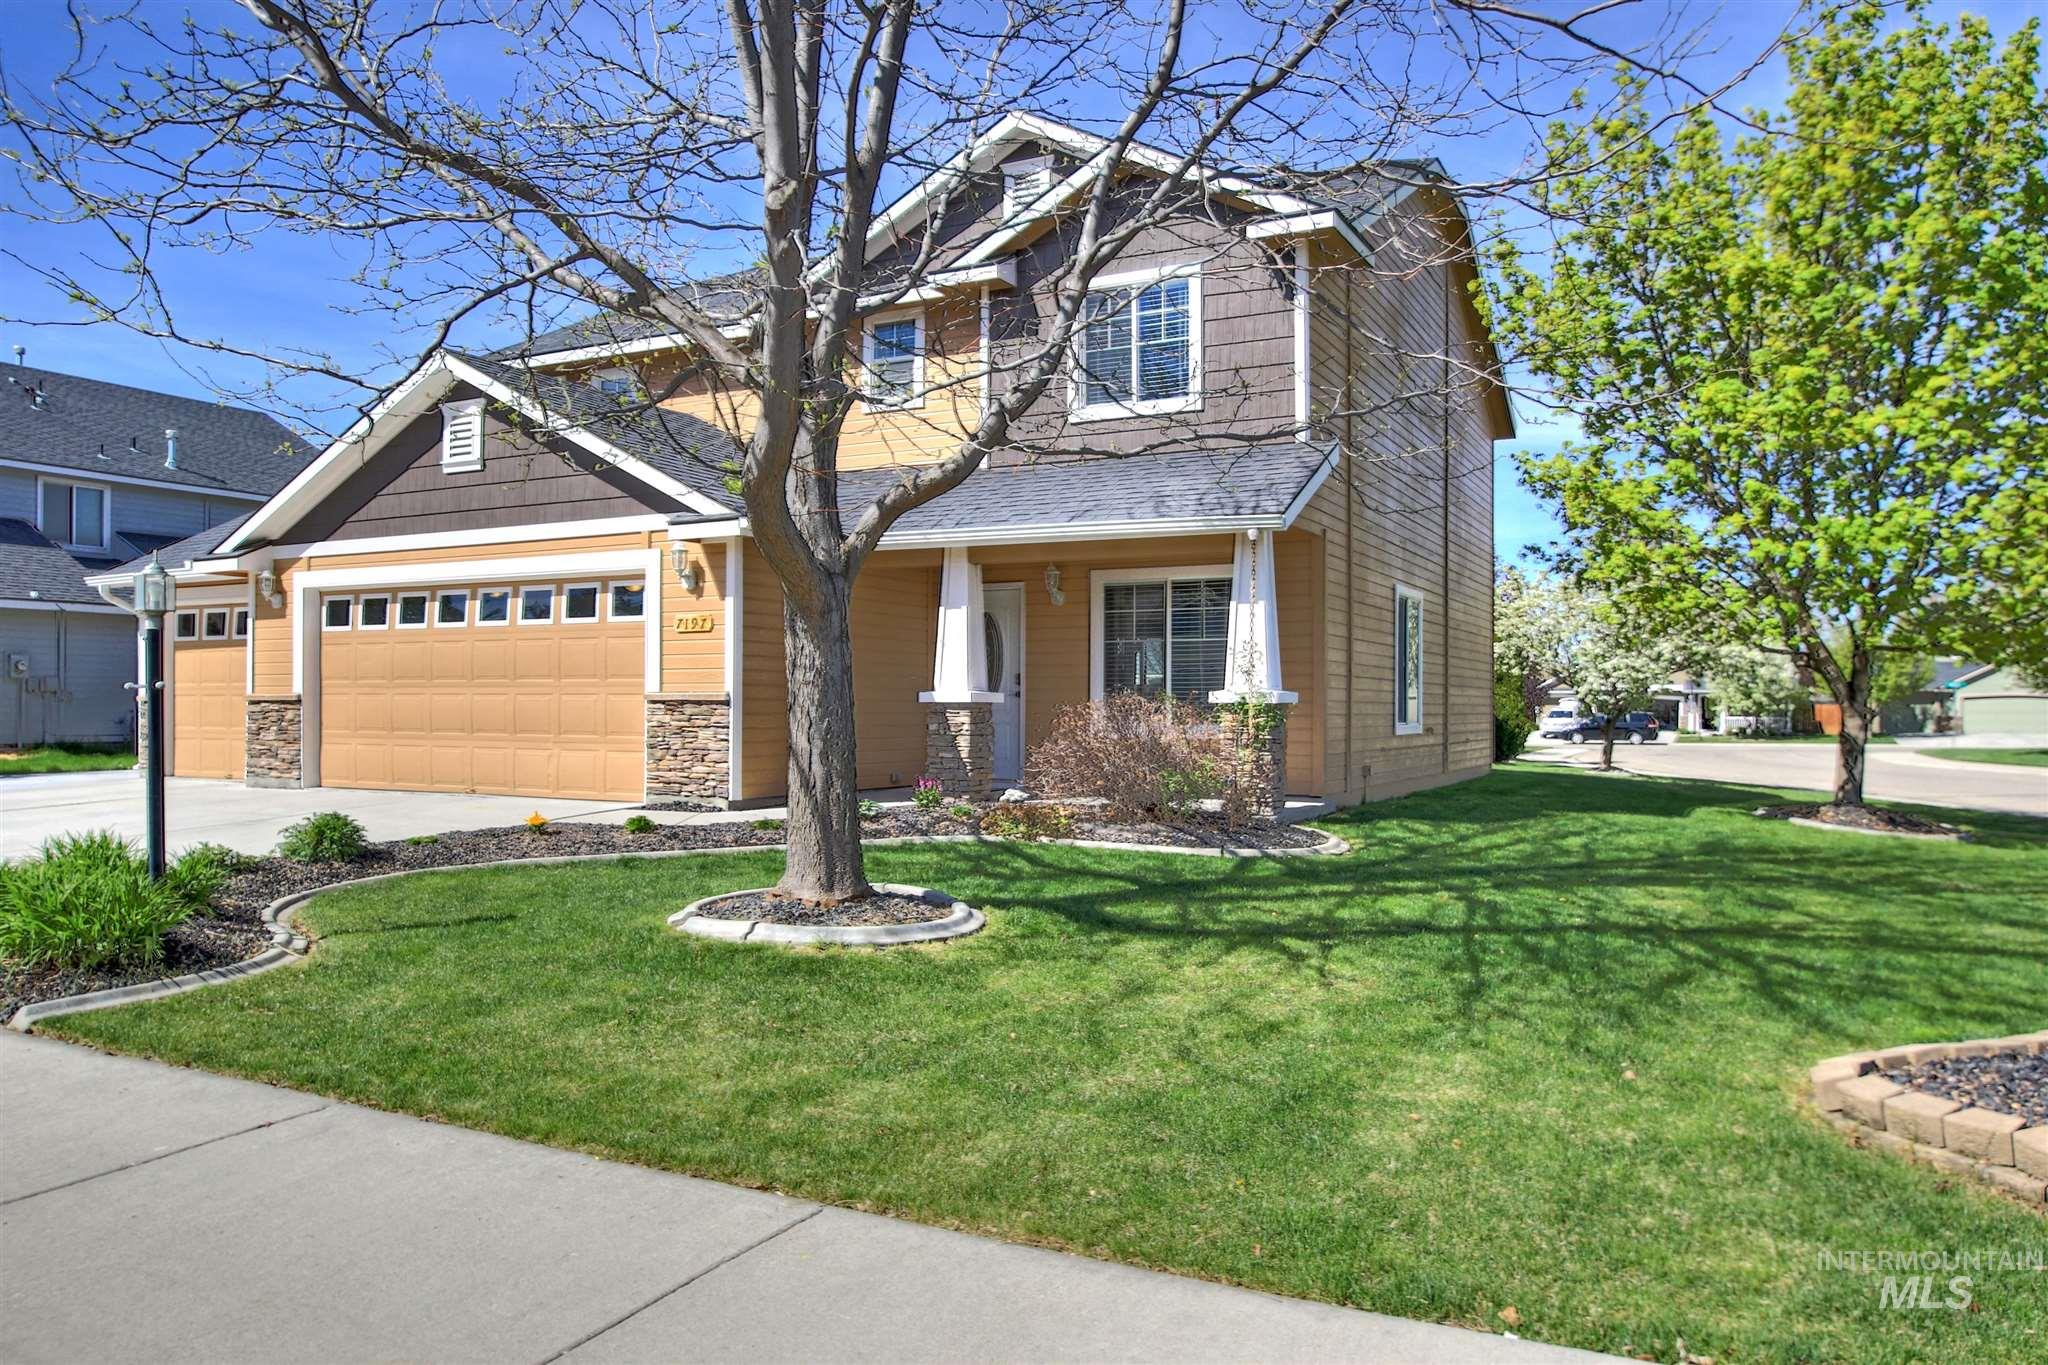 7197 S Shadowmoss Ave Property Photo - Boise, ID real estate listing